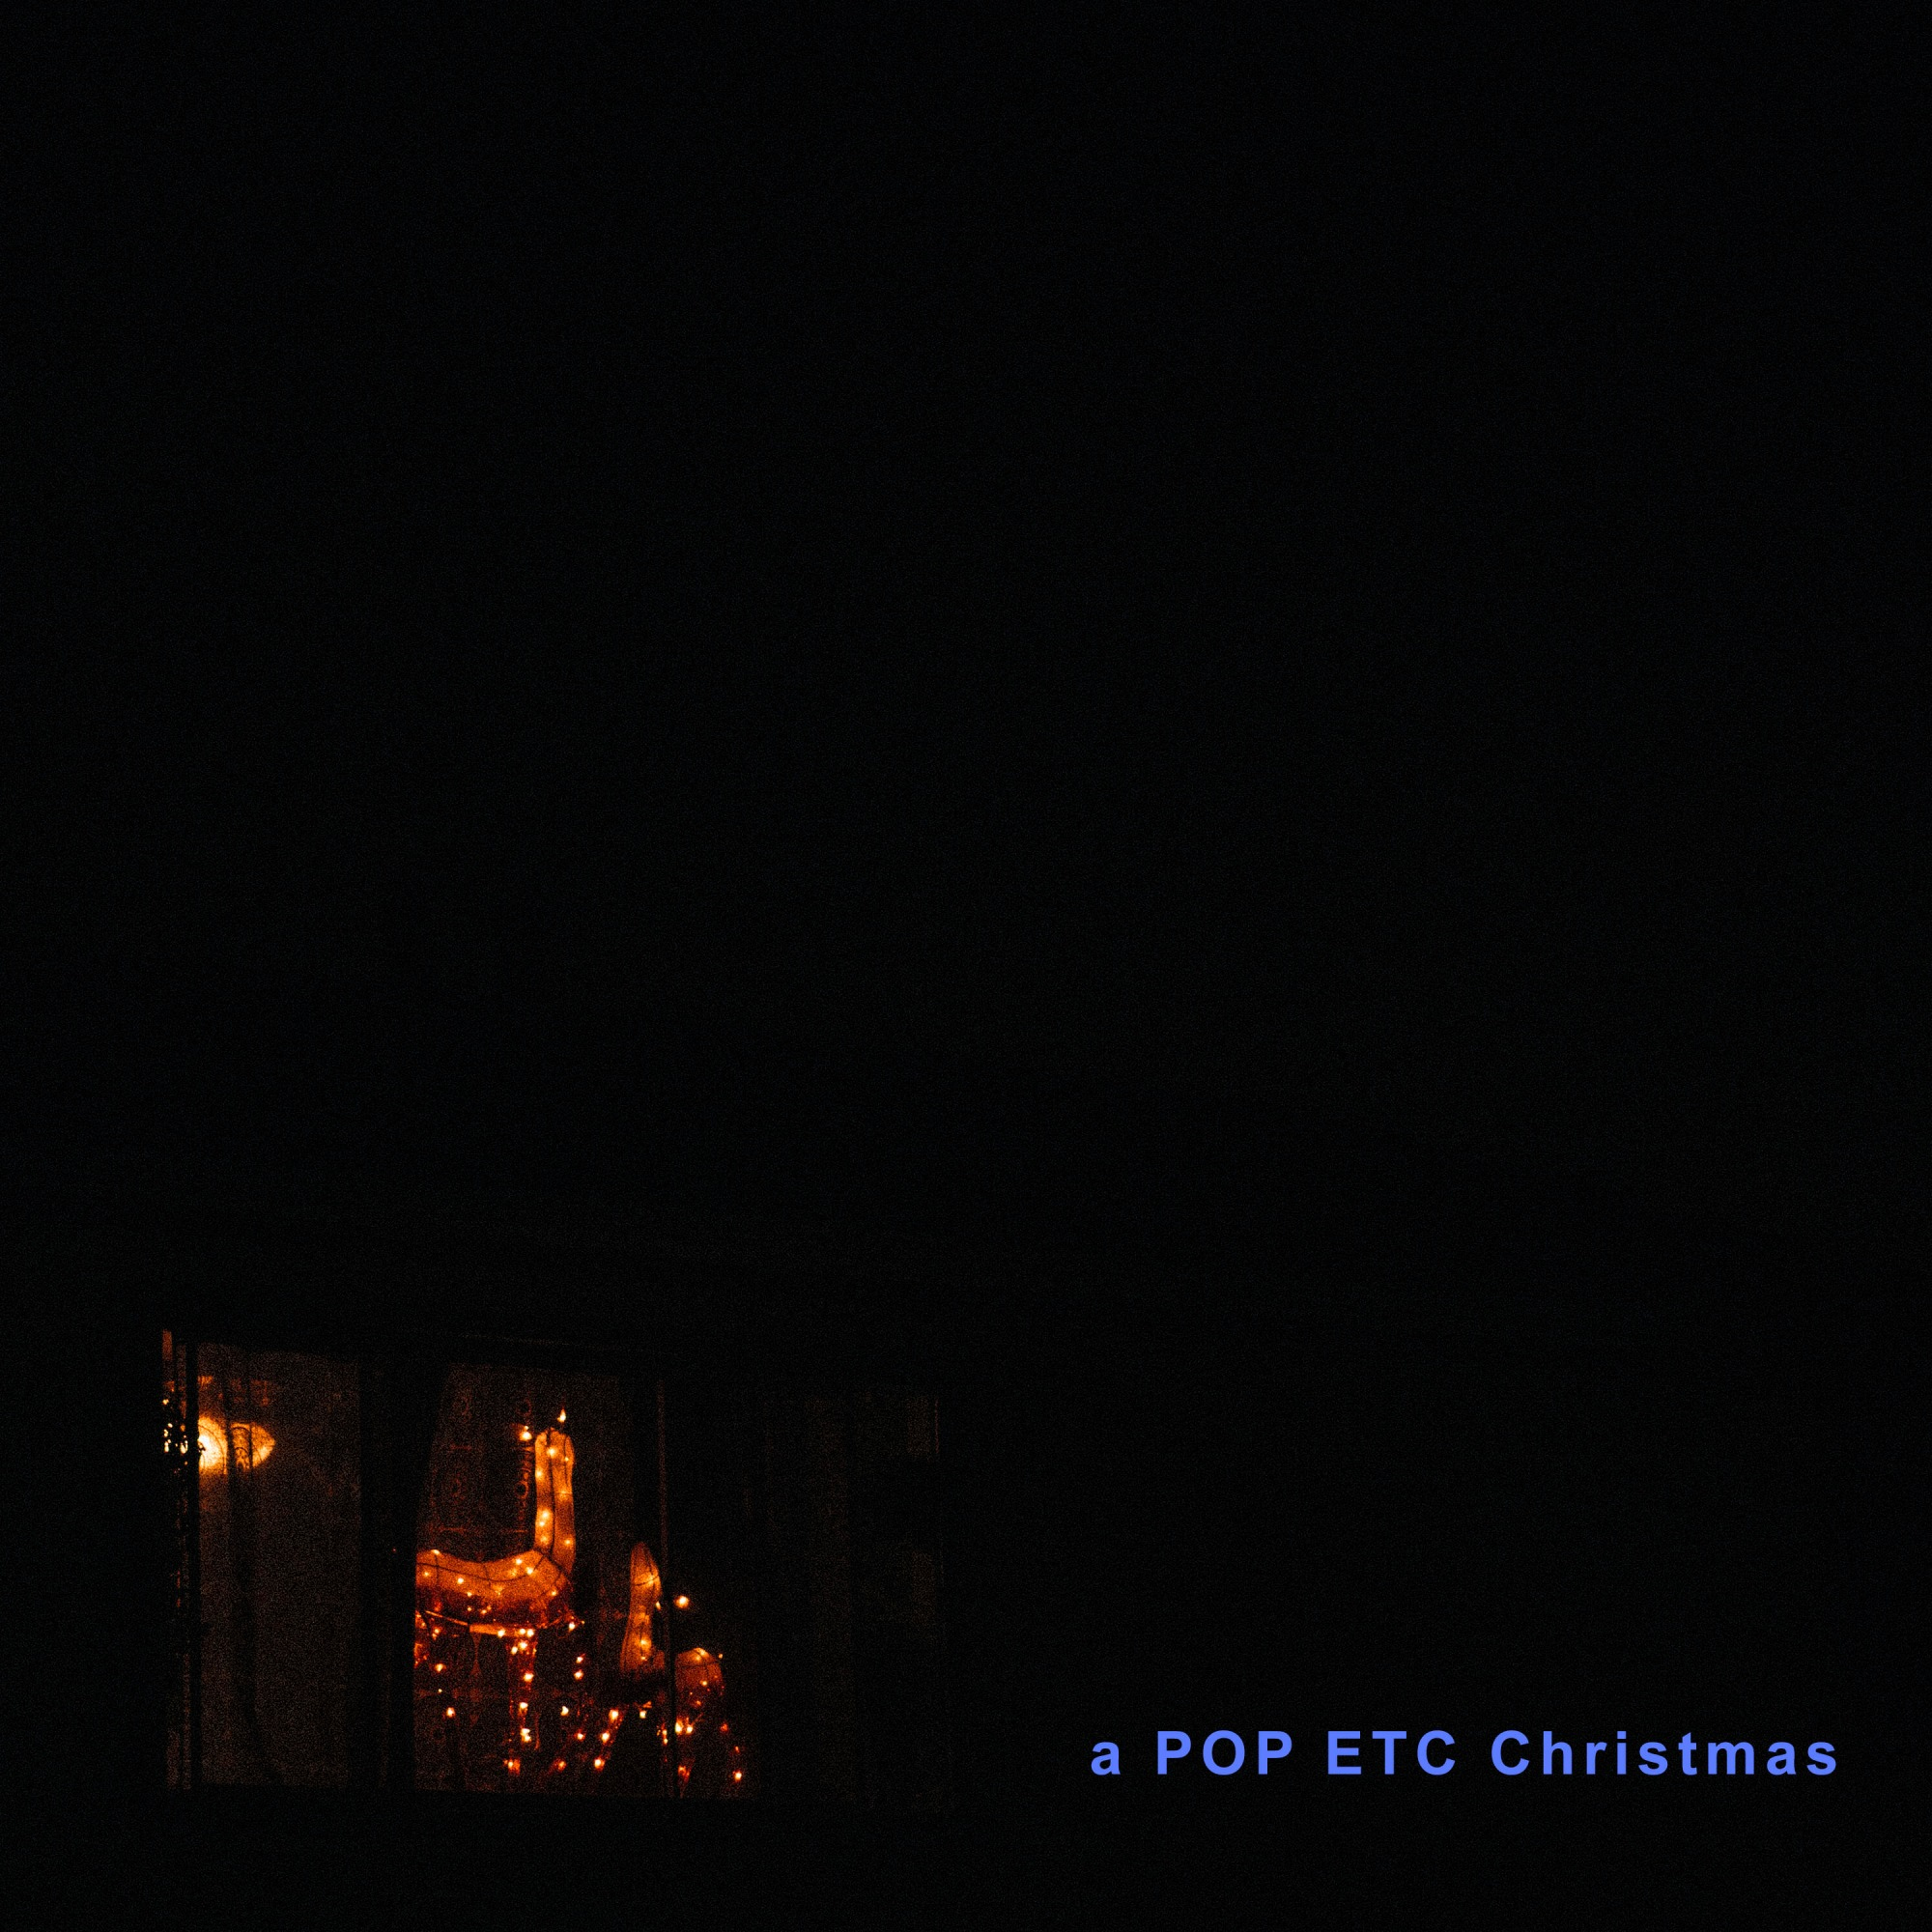 a POP ETC Christmas